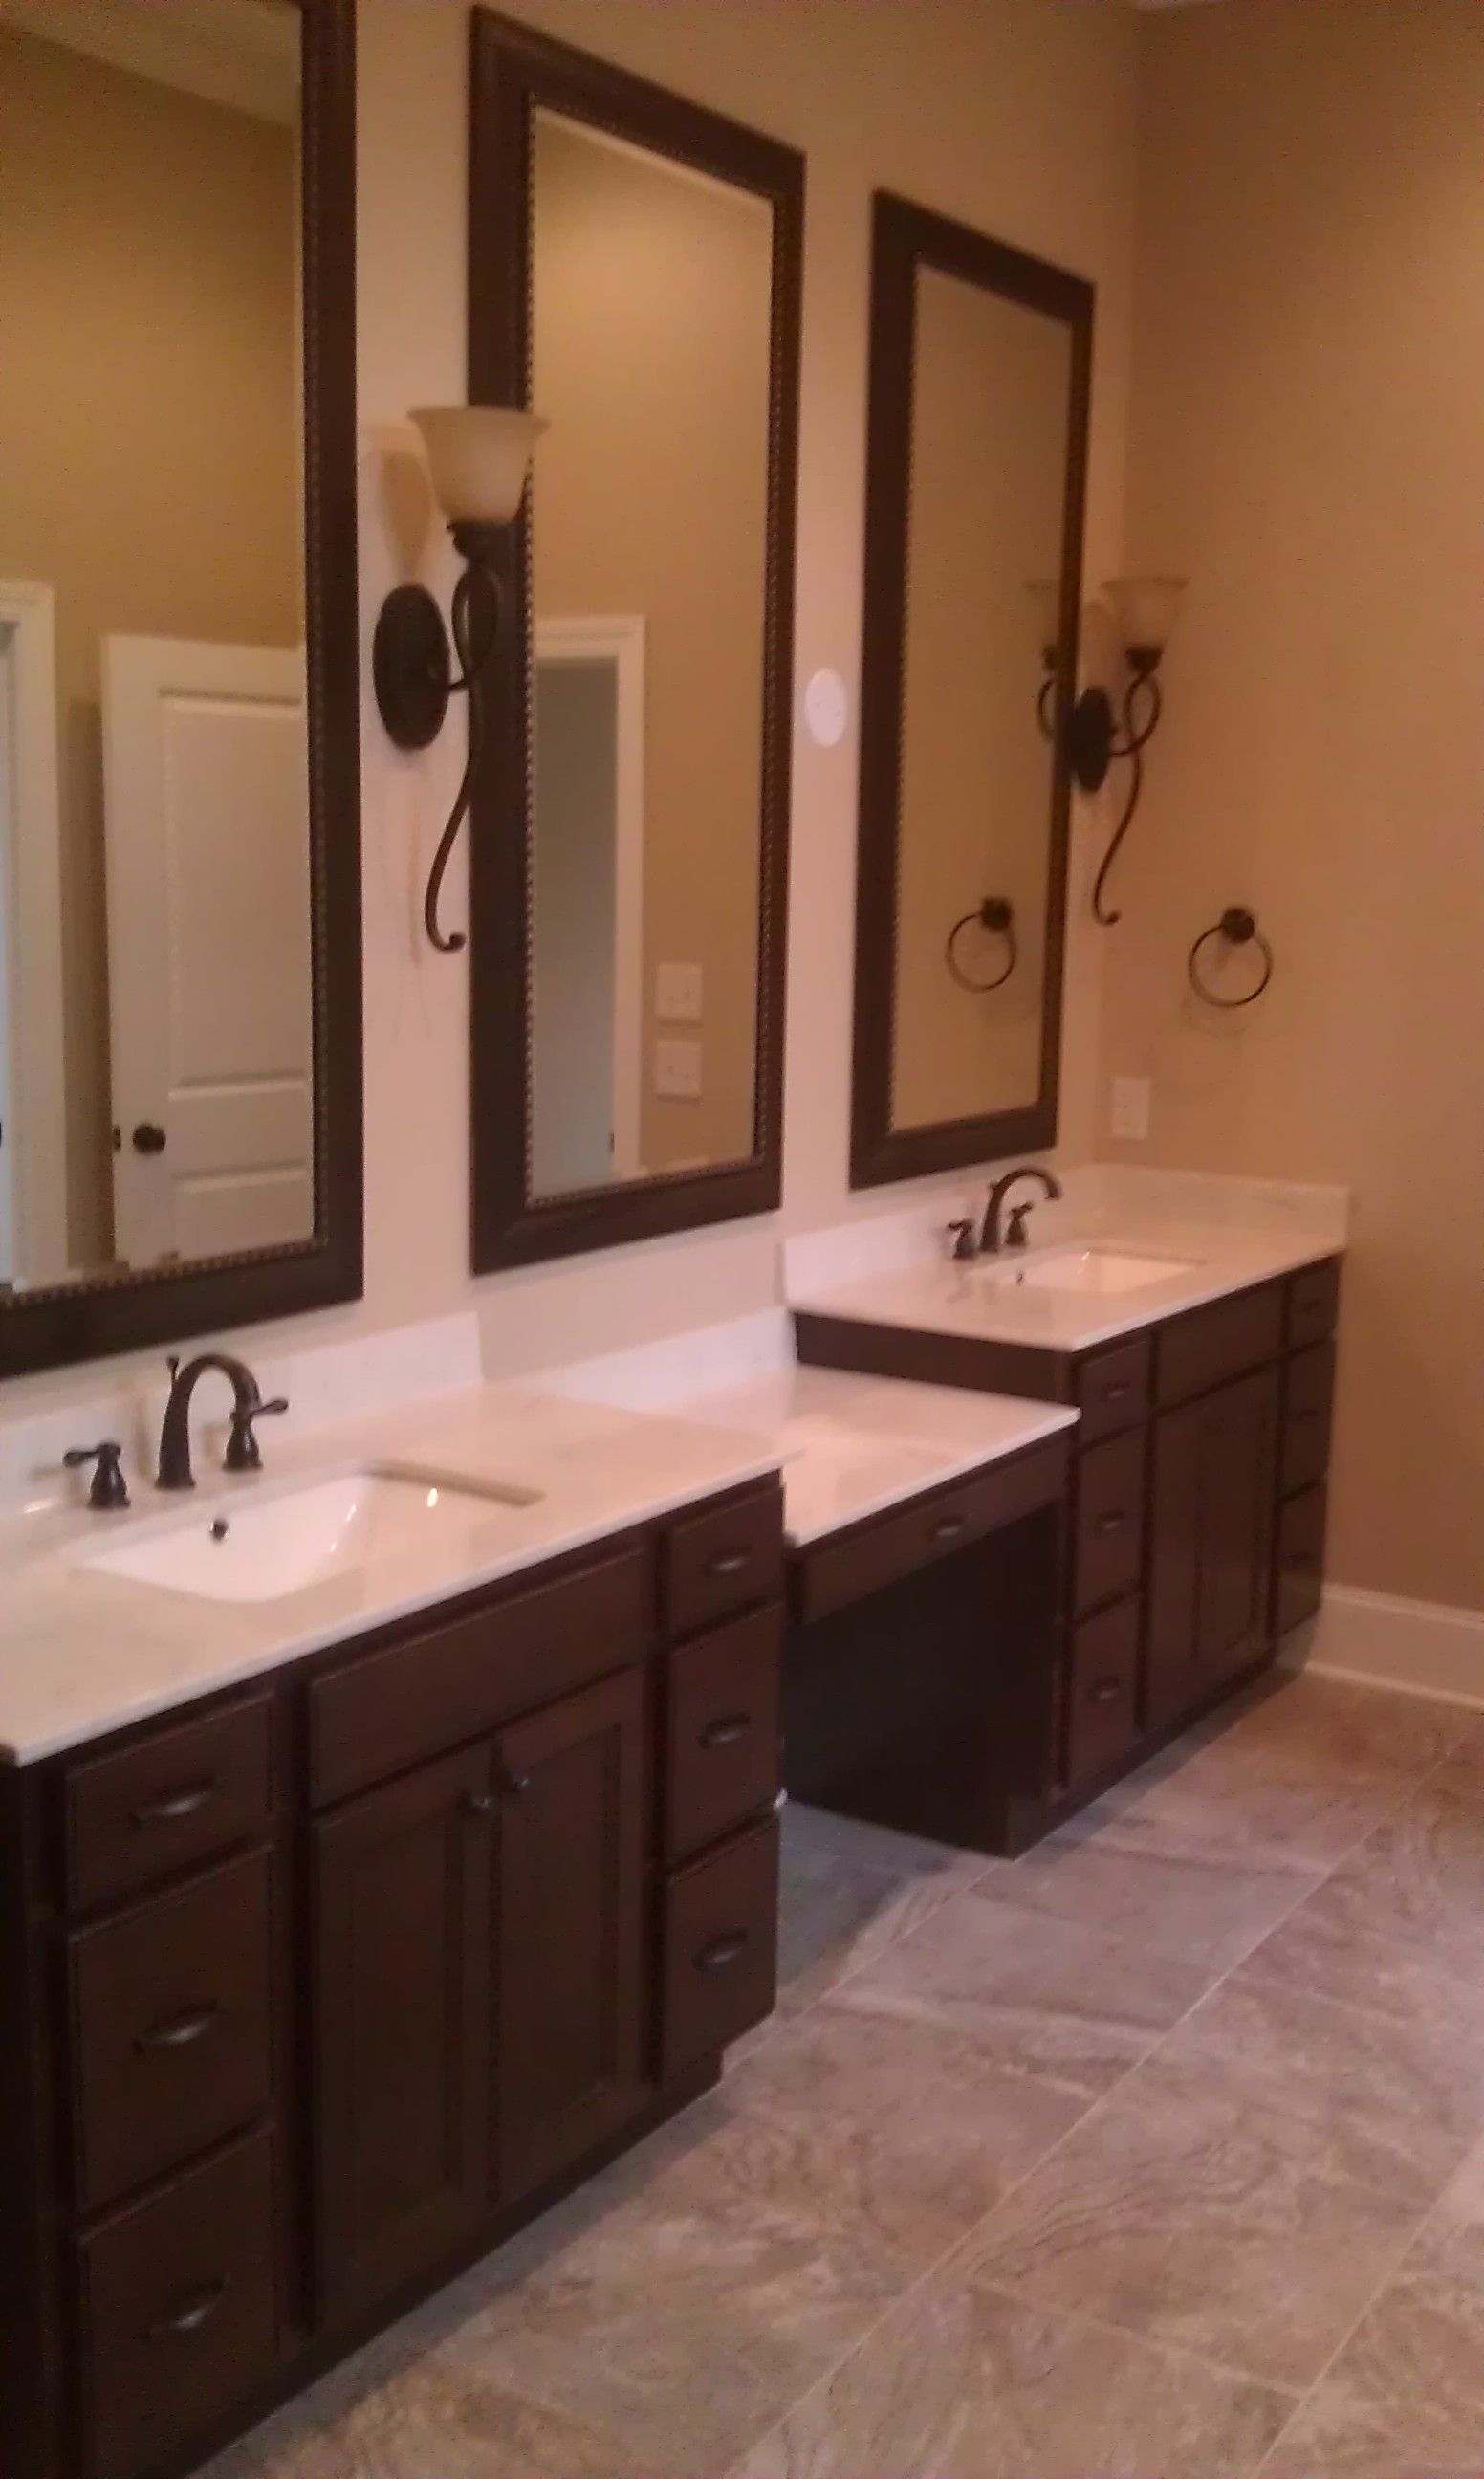 bathroom vanities nj showroom you can definitely give it an idea to purchase the double bathroom vanity if you decide to go - Bathroom Cabinets Knoxville Tn